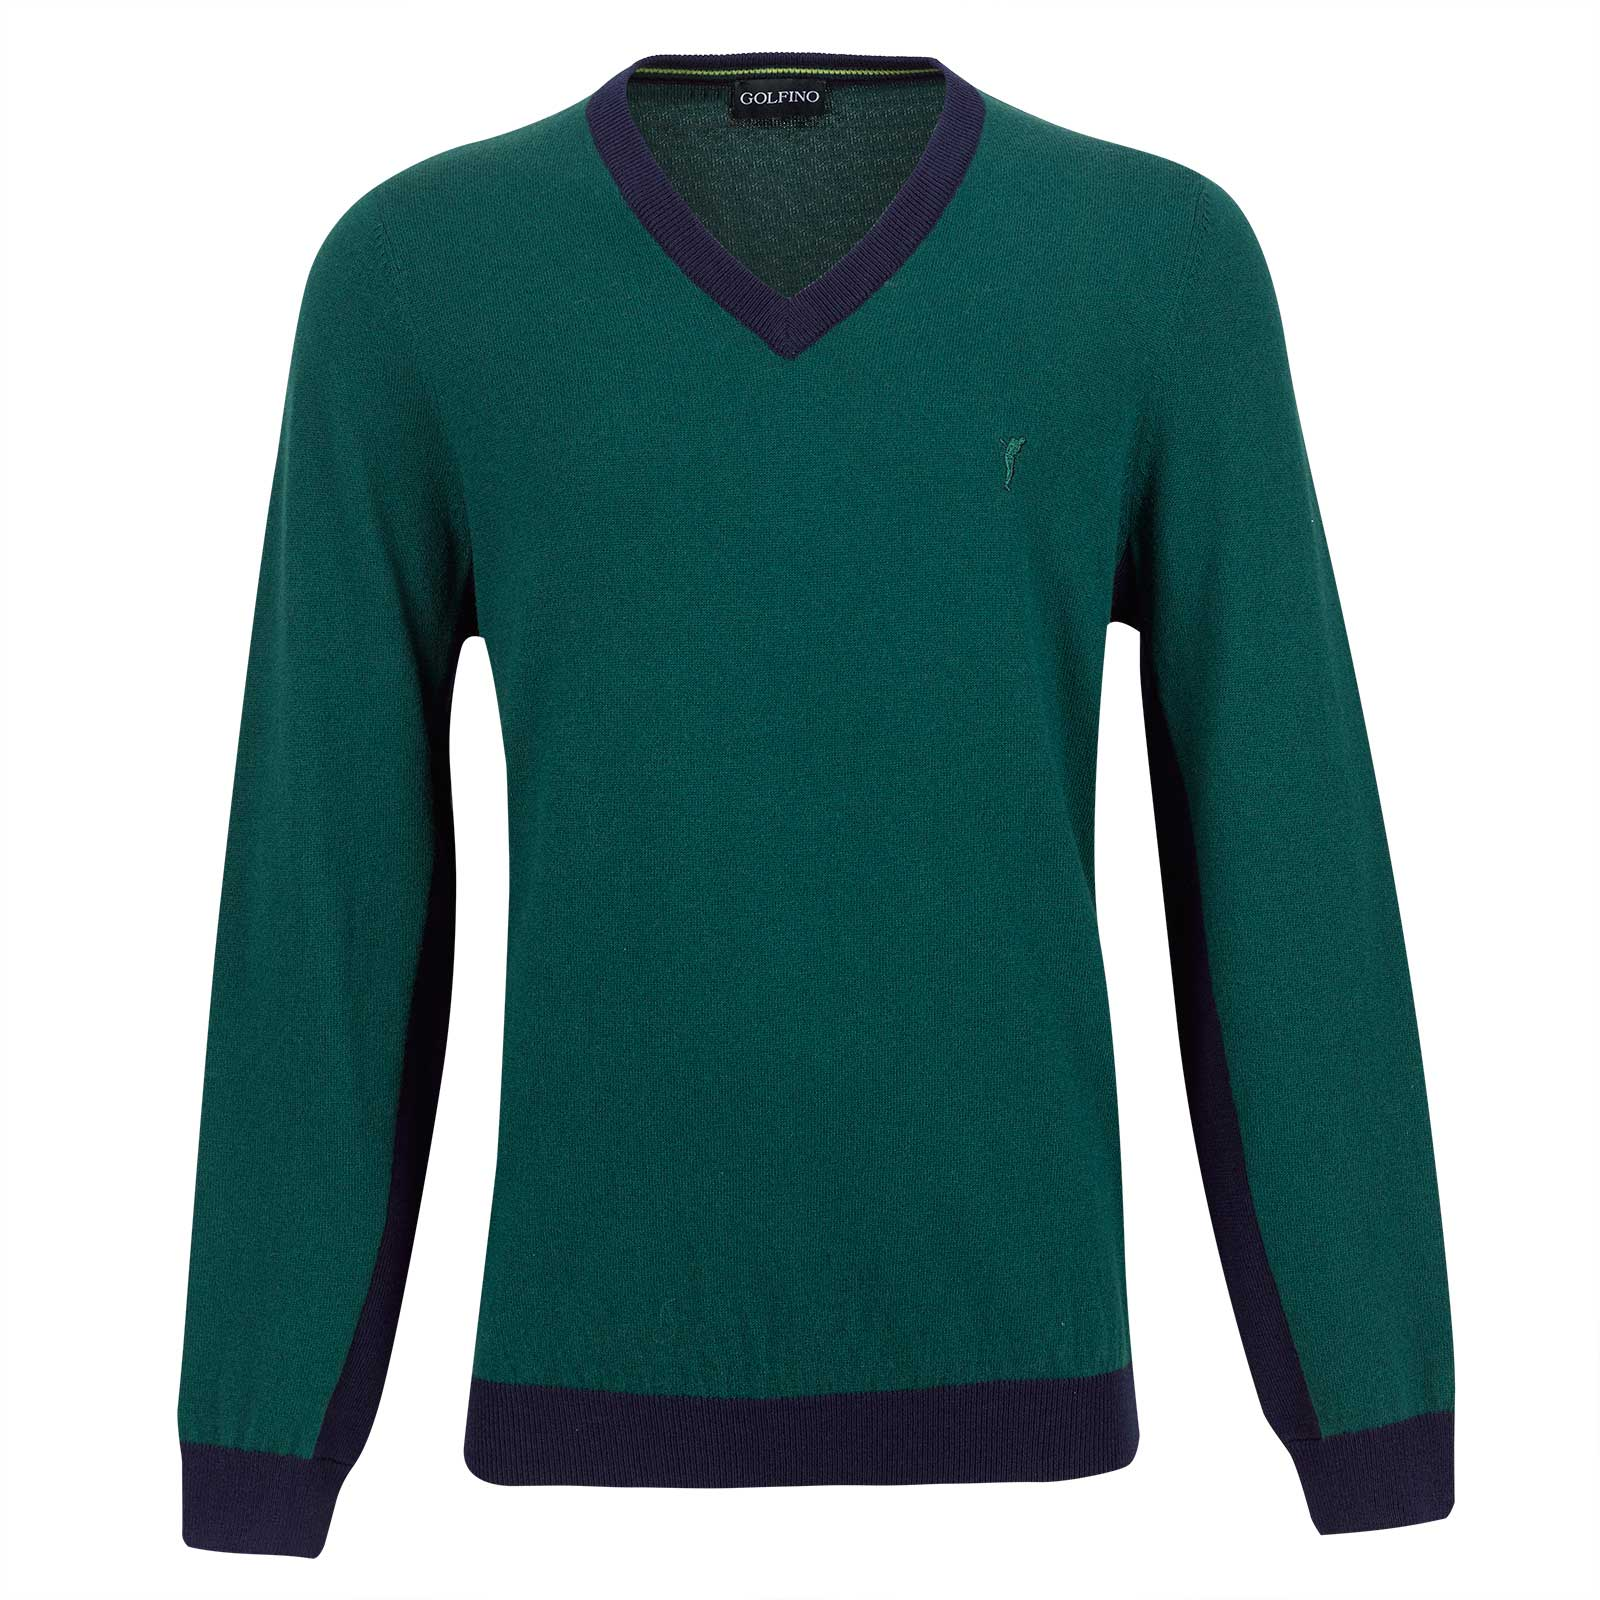 Men's knitted sweater made from Merino cotton blend with V-neck